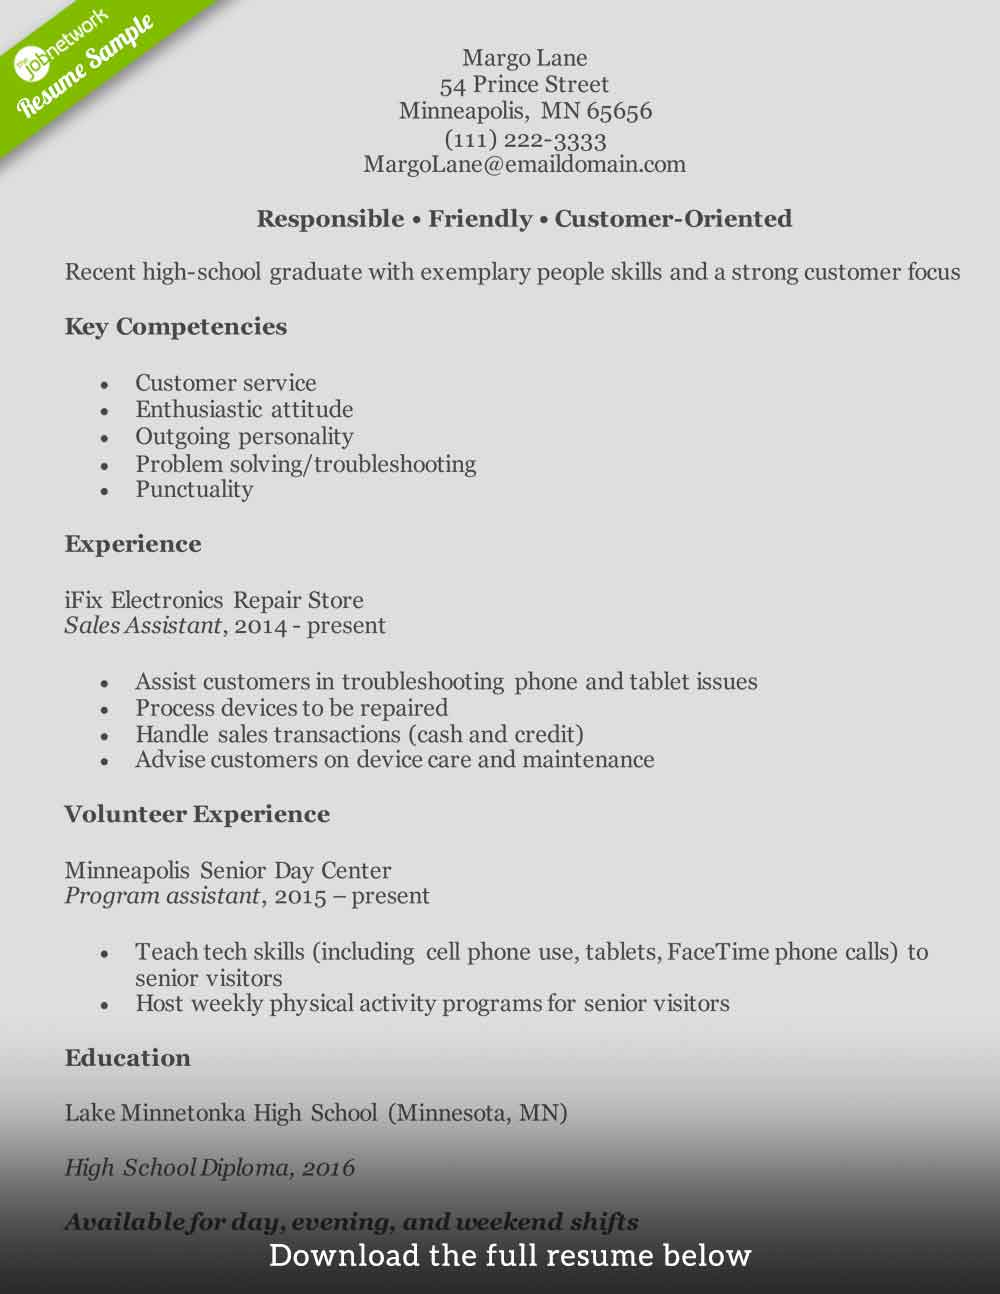 customer service resume to write the perfect one examples bullet points entry level1 free Resume Customer Service Resume Bullet Points